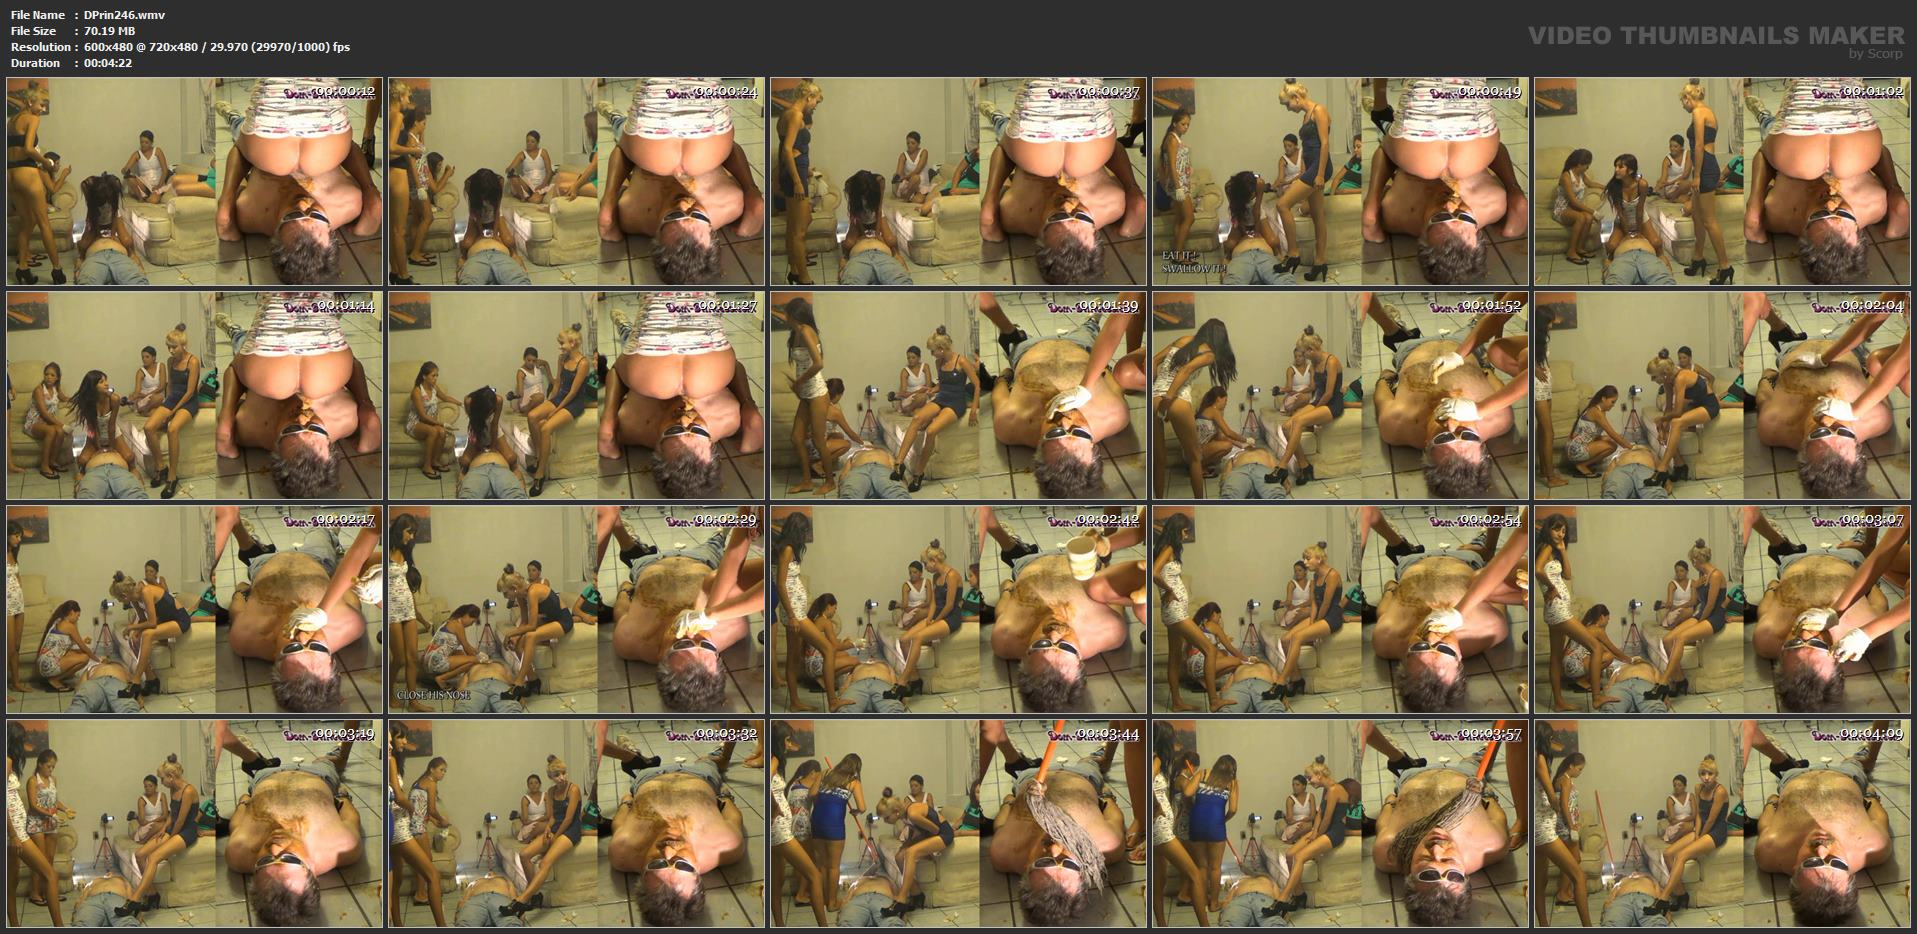 [DOM-PRINCESS] Toilet Slave is being convinced to be a Good Toilet Part 2 Carmen [SD][480p][WMV]